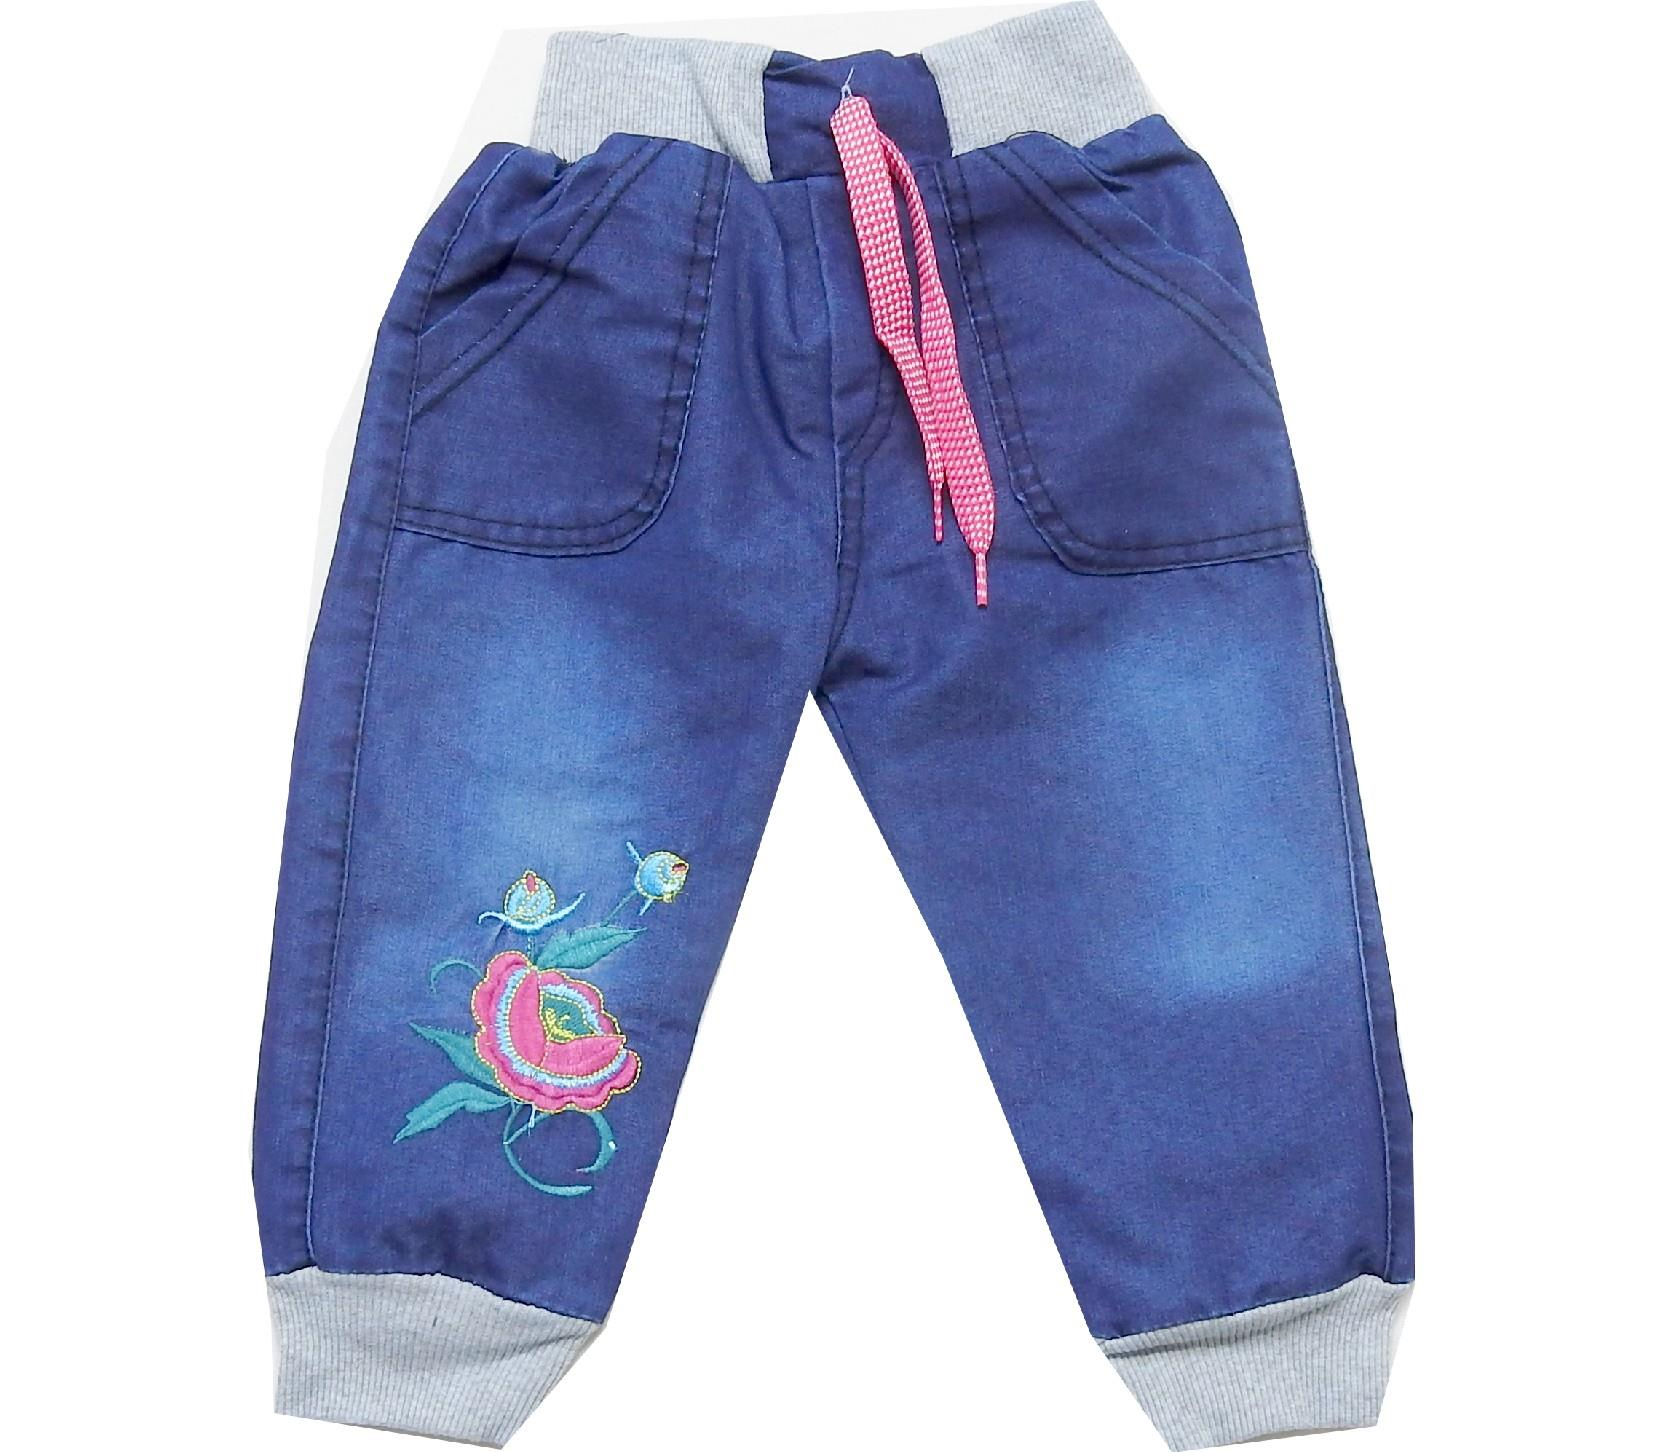 Wholesale assorted printed design jeans trouser for babies (9-12-18-24 month)